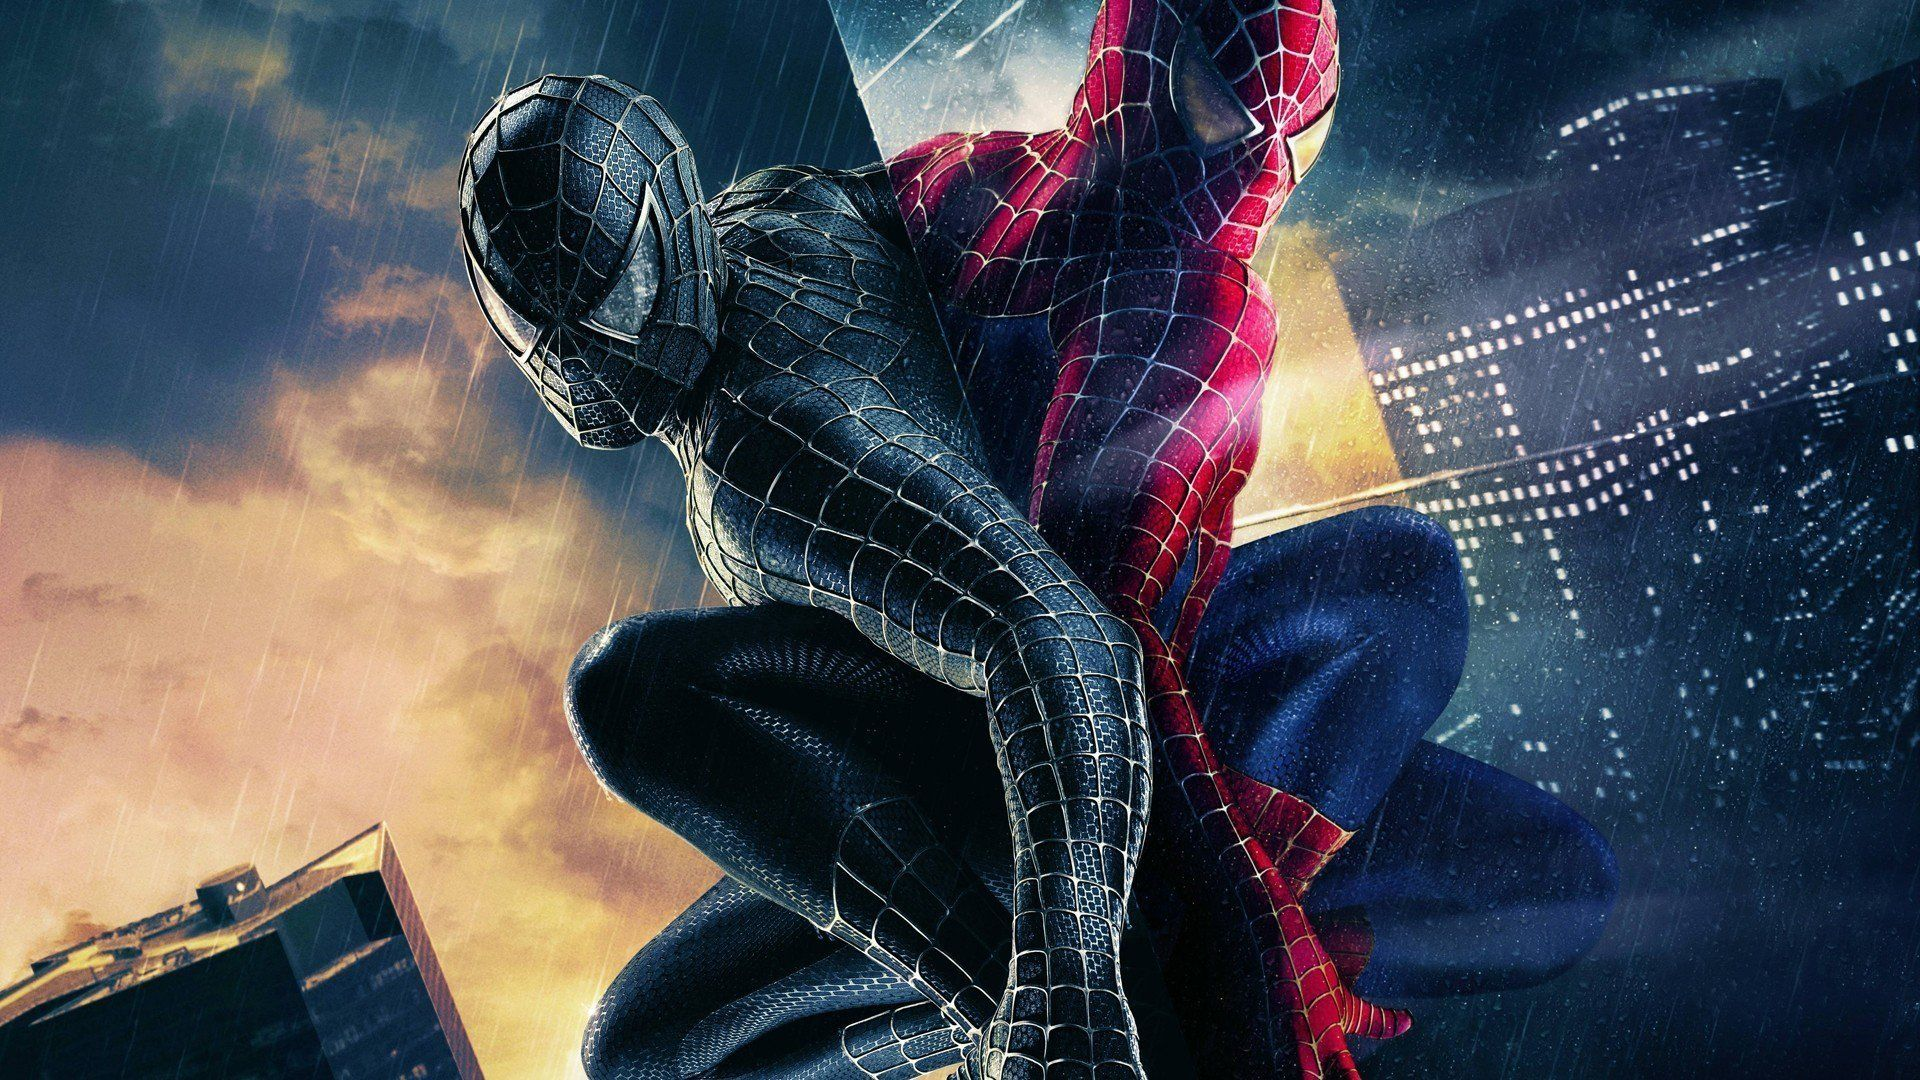 16 Spider Man 3 Hd Wallpapers Backgrounds Wallpaper Abyss Spiderman Baby School Bags Spiderman Movie